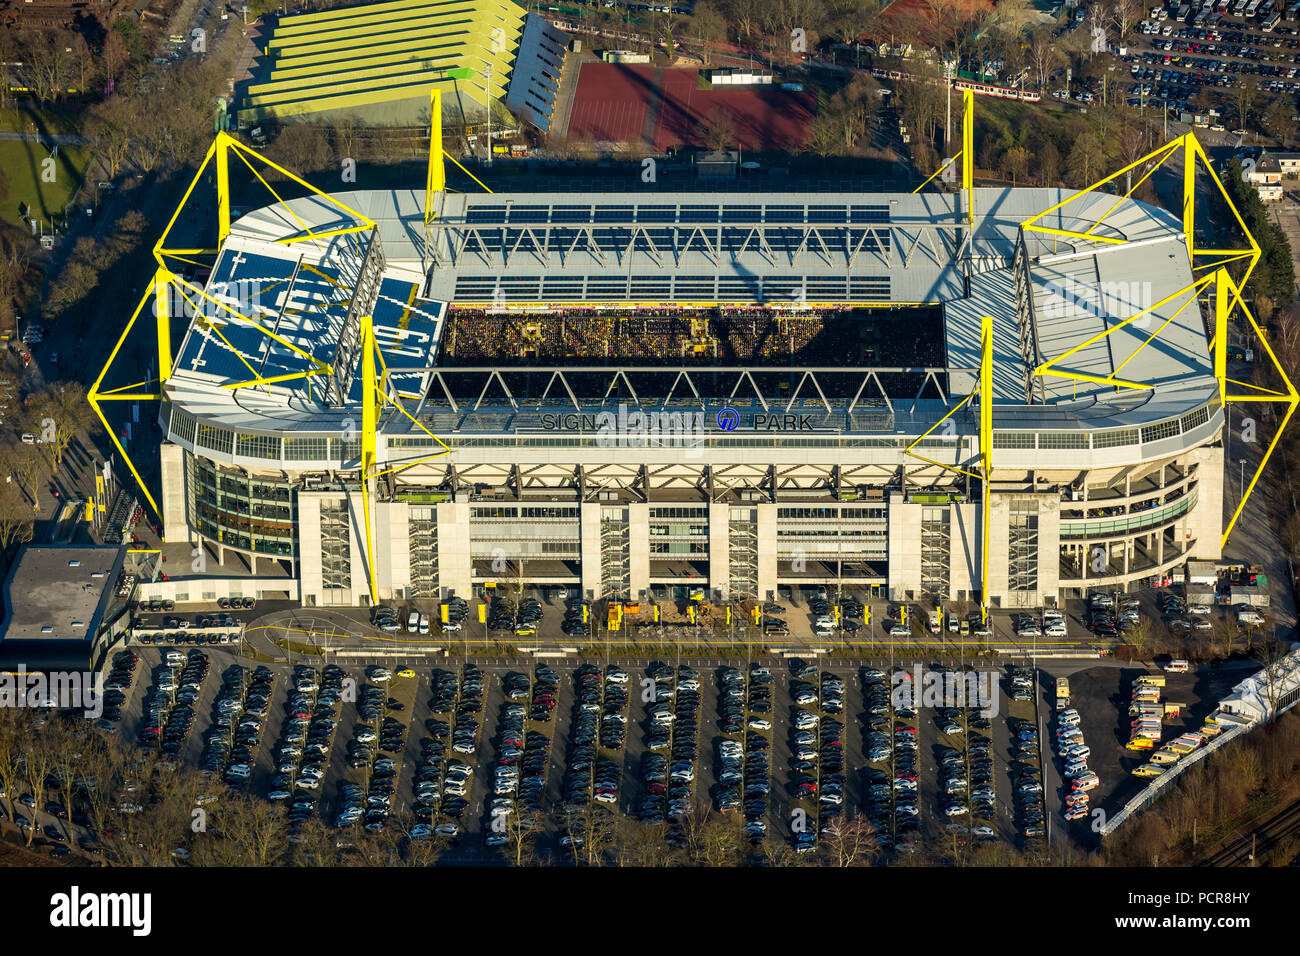 Revier Derby at Signal Iduna Park, Borussia Dortmund against FC Schalke 04 ended 3 to 0 at the Westfalenstadion Dortmund, Dortmund, Ruhr area, North Rhine-Westphalia, Germany - Stock Image